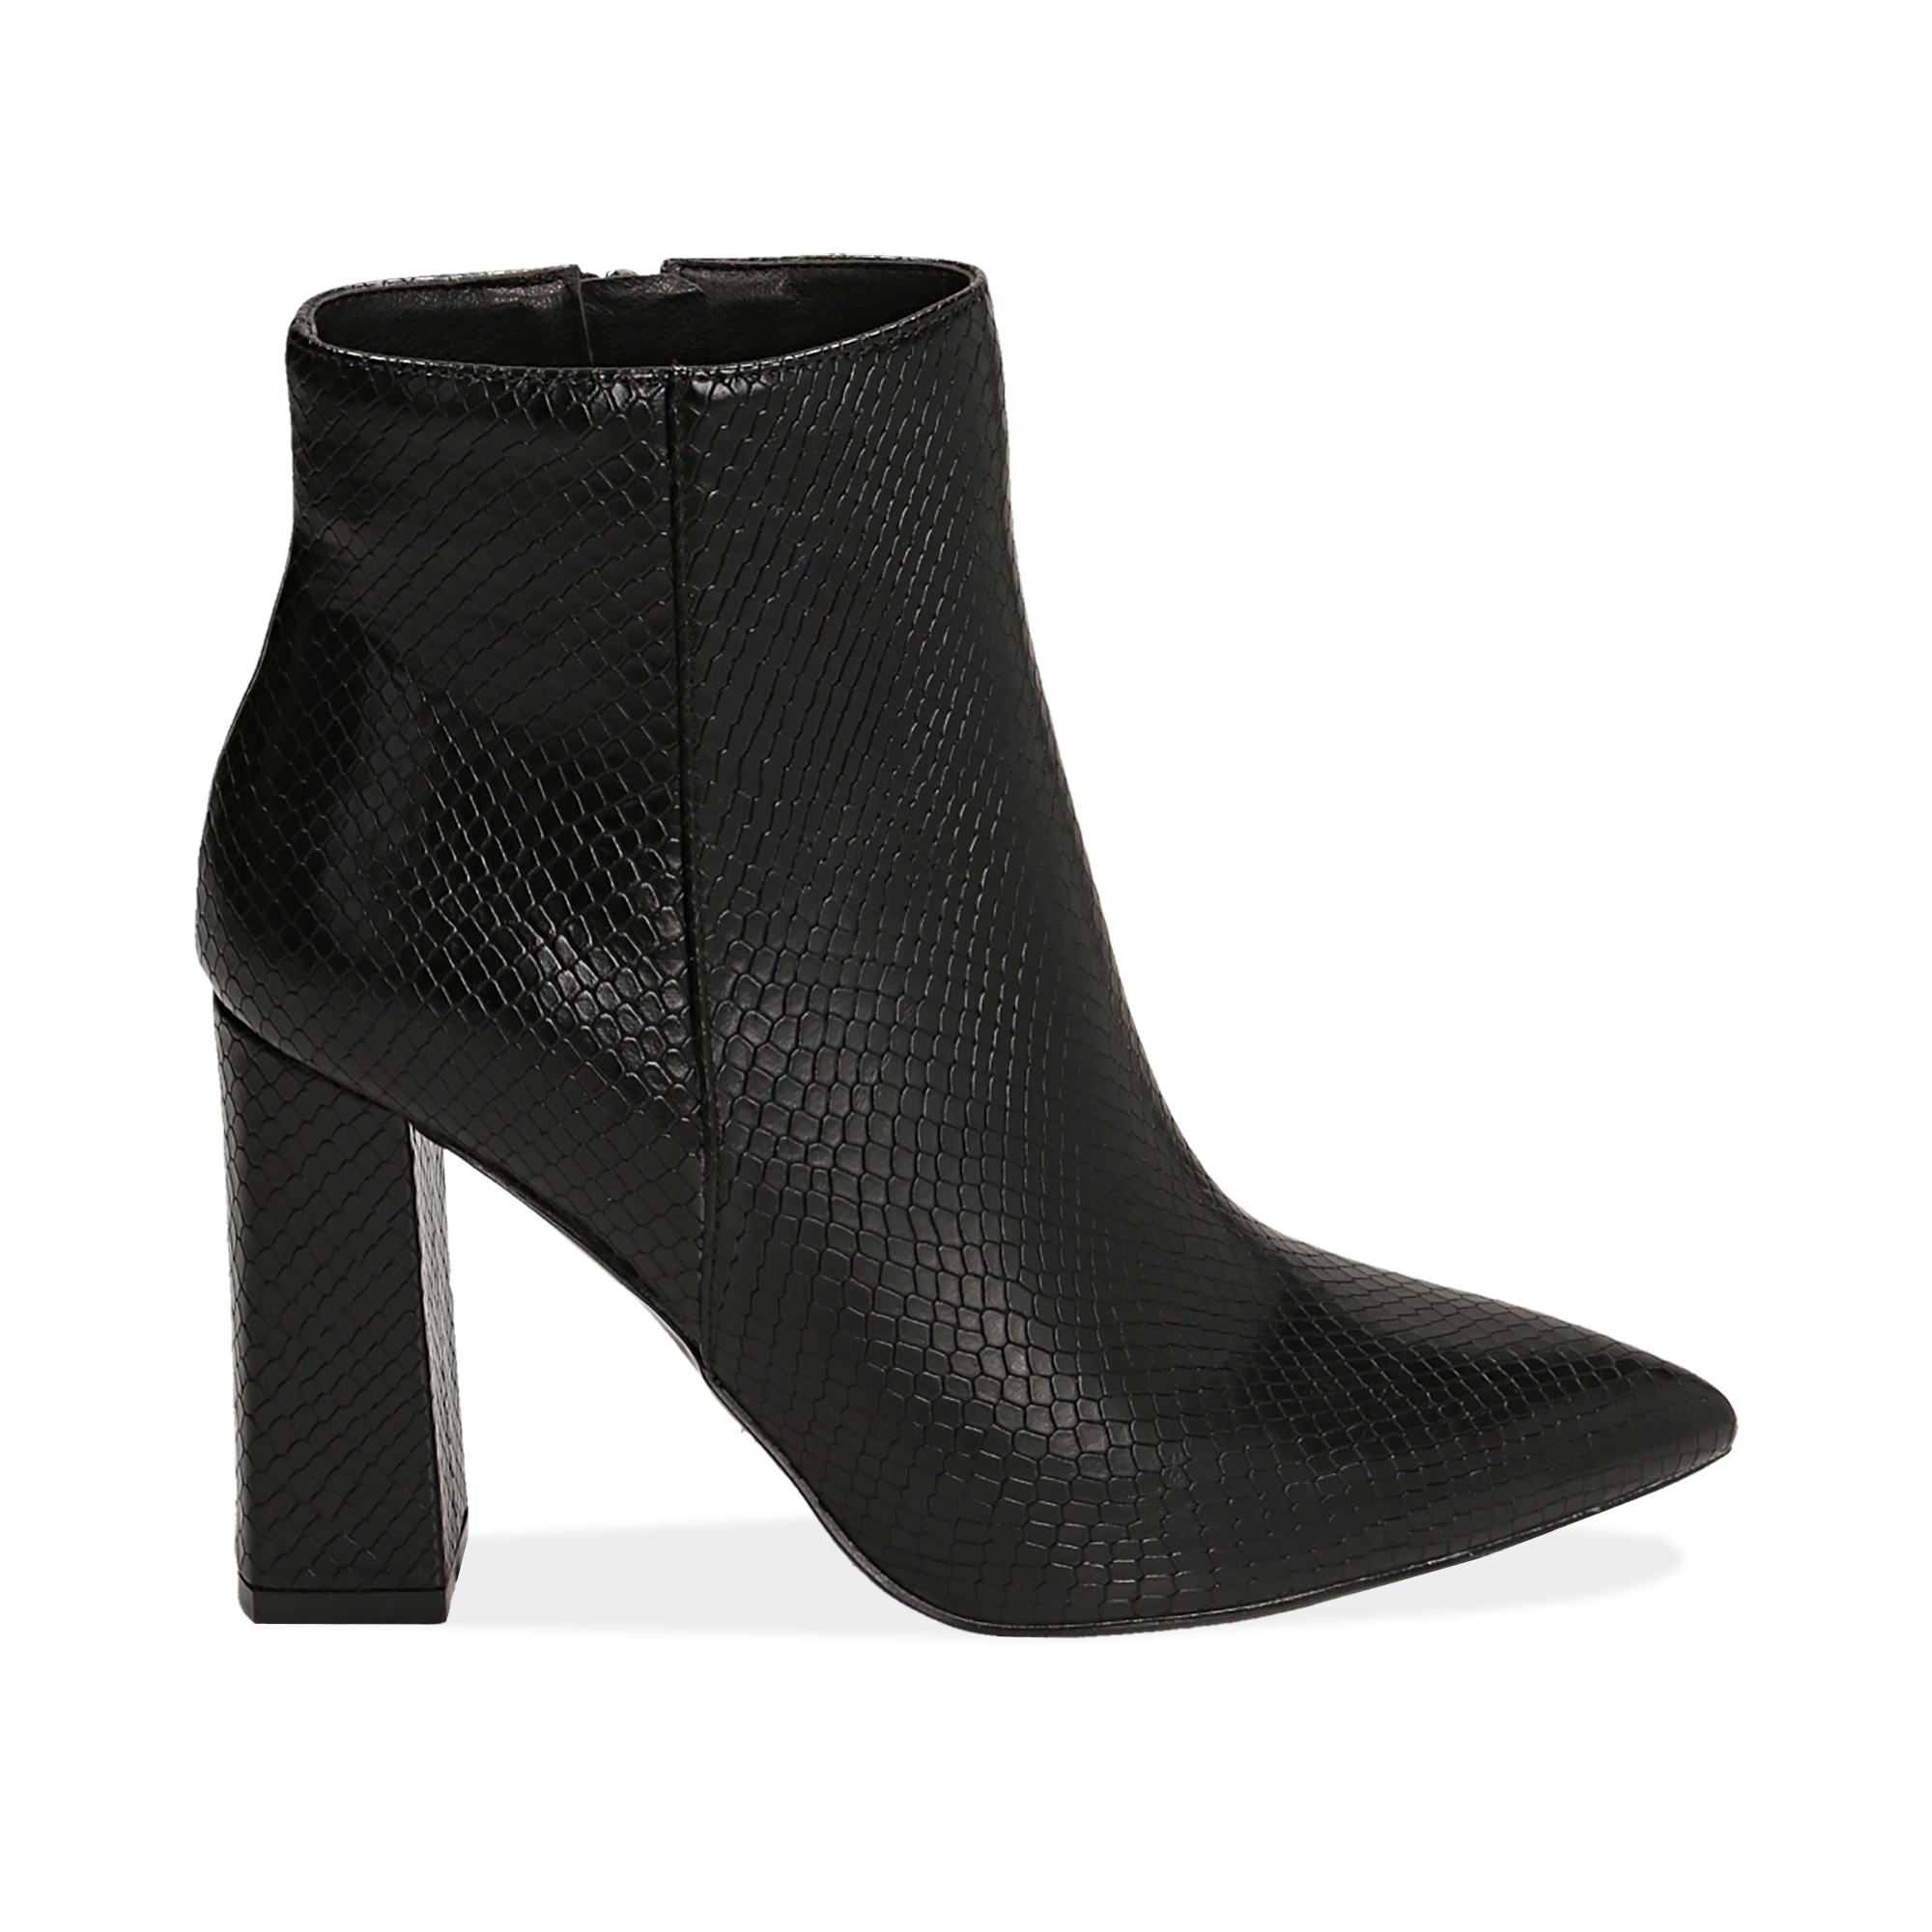 Ankle boots neri in eco-pelle stampa pitone, tacco 9,5 cm